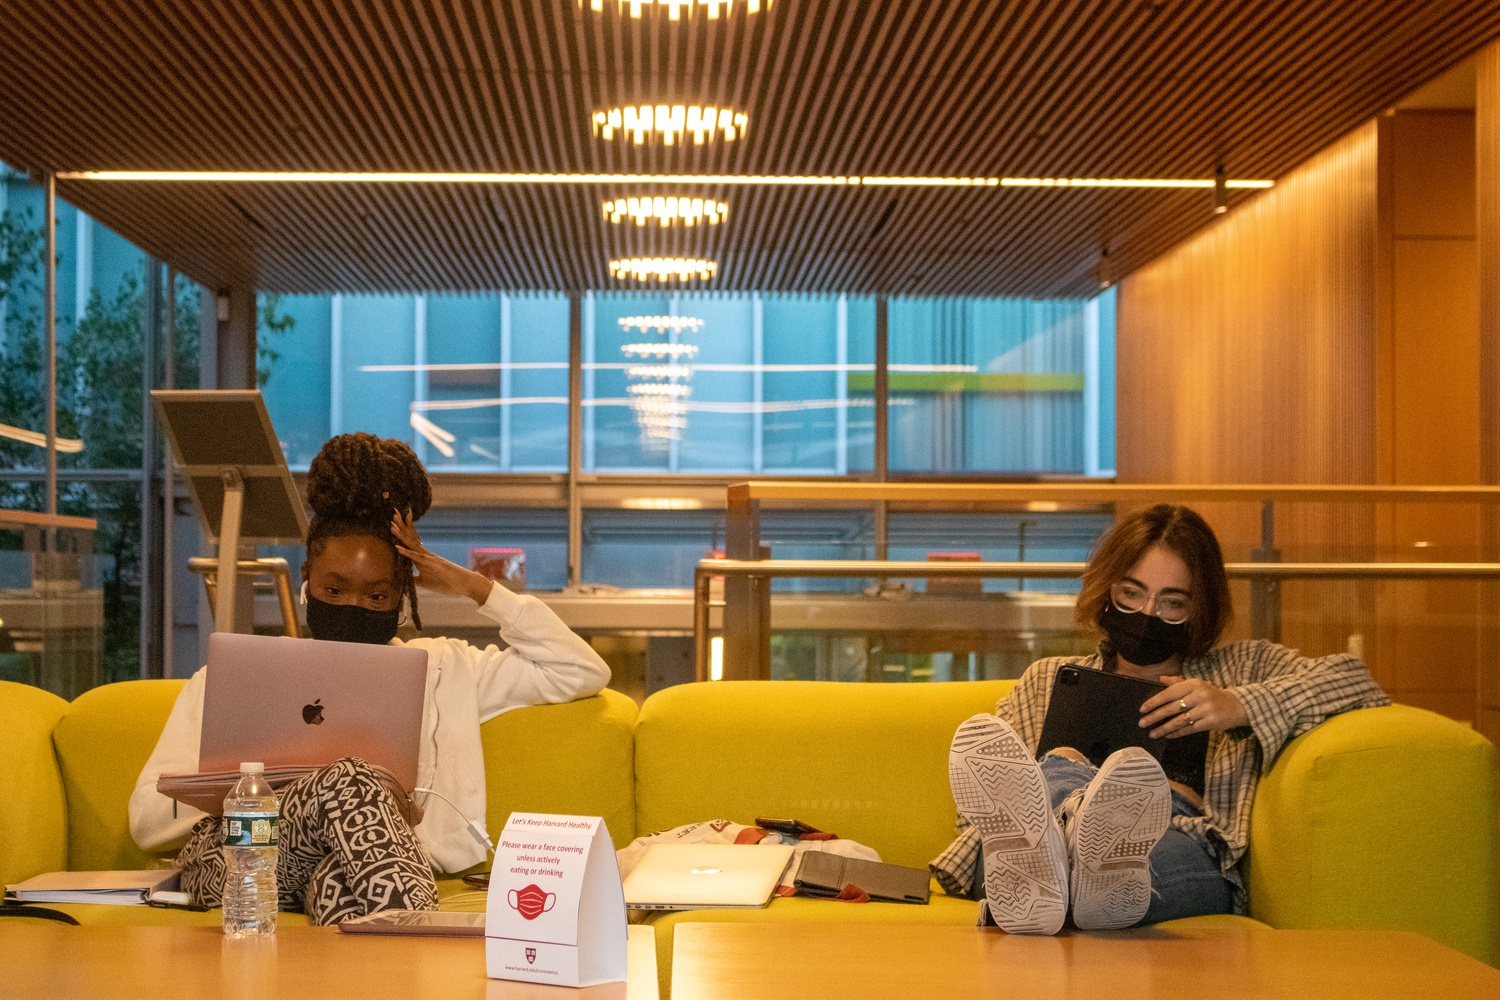 Masked students use laptops at the Smith Campus Center.